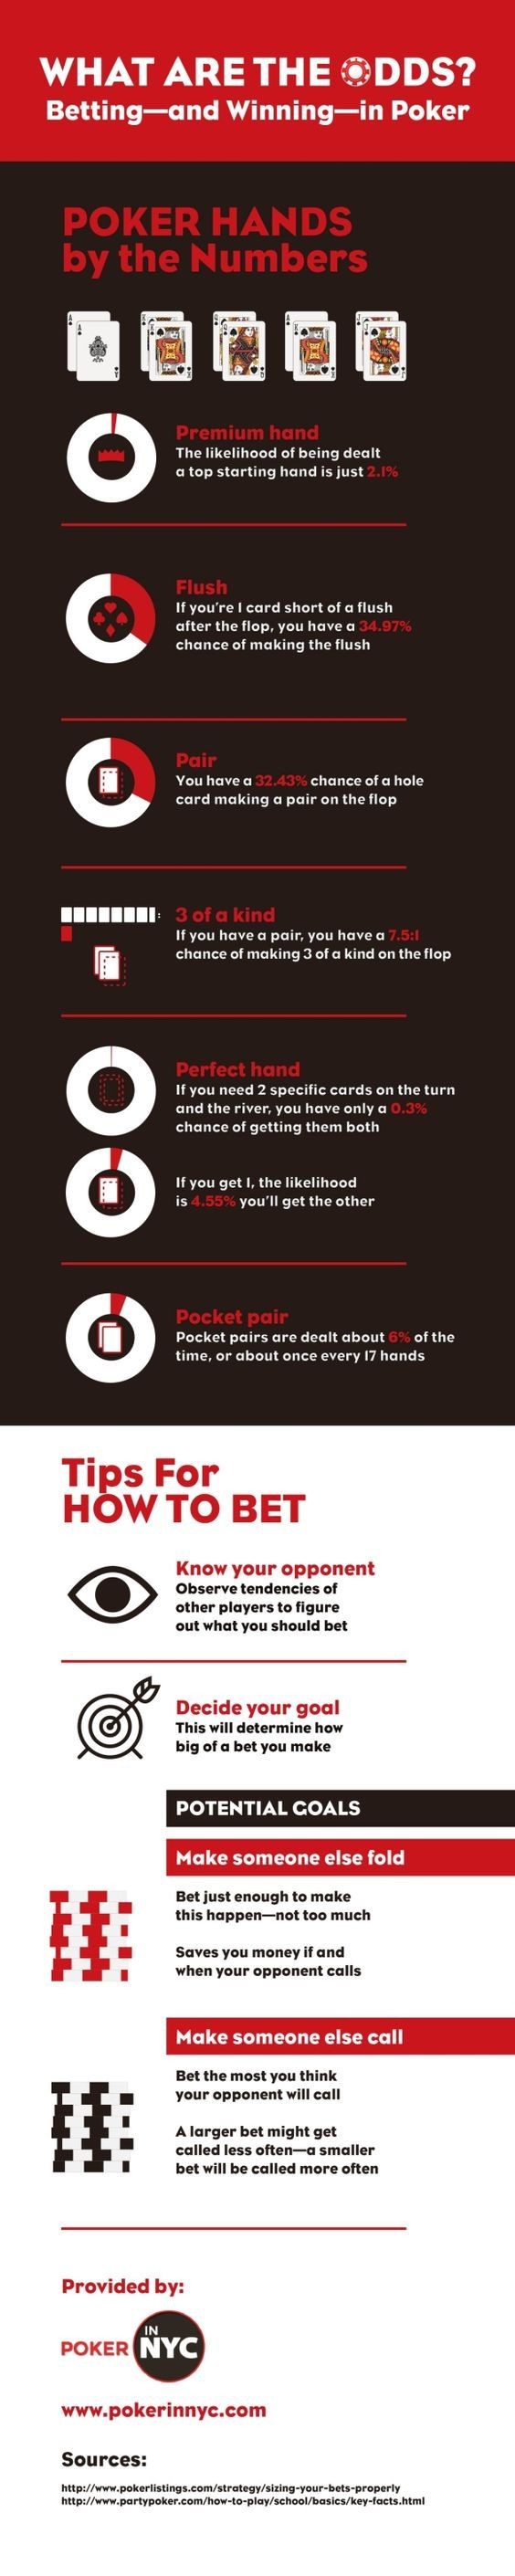 Rules of poker betting tips ben bettinger knife fight esquire